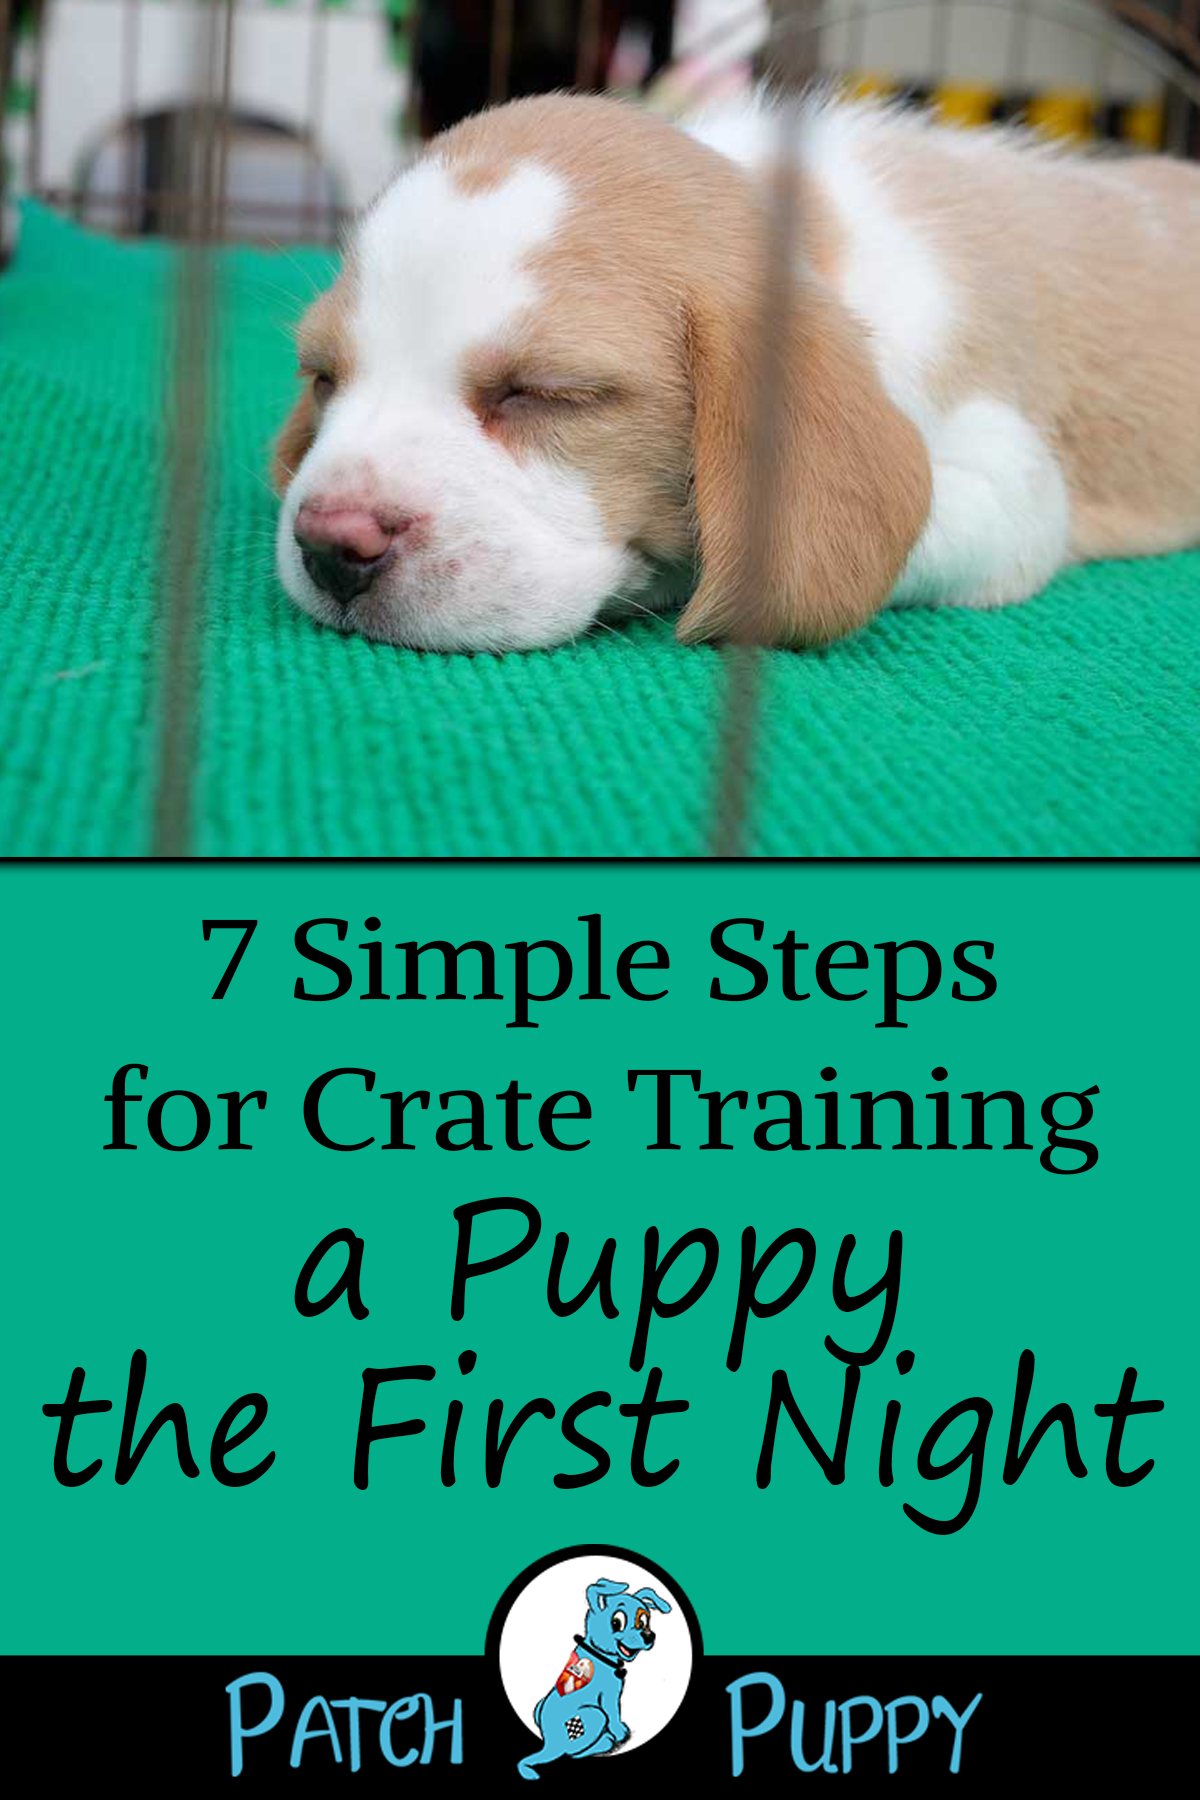 7 Simple Steps For Crate Training A Puppy The First Night Patchpuppy Com Crate Training Puppy Crate Training Puppy Schedule Kennel Training A Puppy